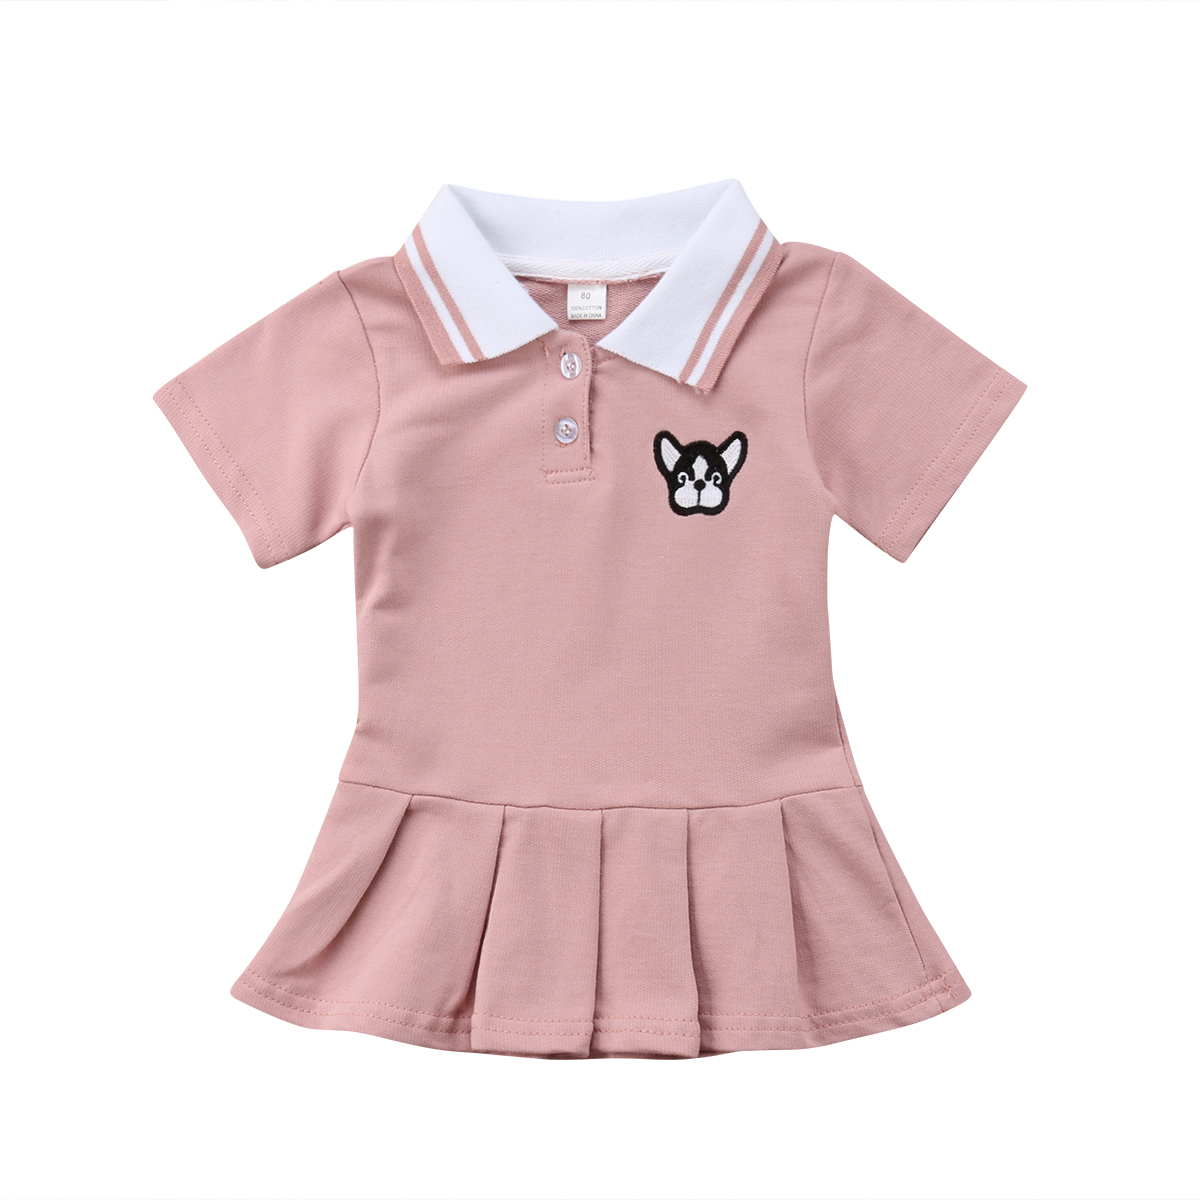 Kids Baby Girl Dress Cute New Summer Party Tutus Short Sleeve Embroidery Pleated Turn-down Collar Sundress Cartoon Dog Dresses lovely toddler kids baby girl summer dress bunny ear short sleeve hooded outfit one pieces princess children dresses sundress